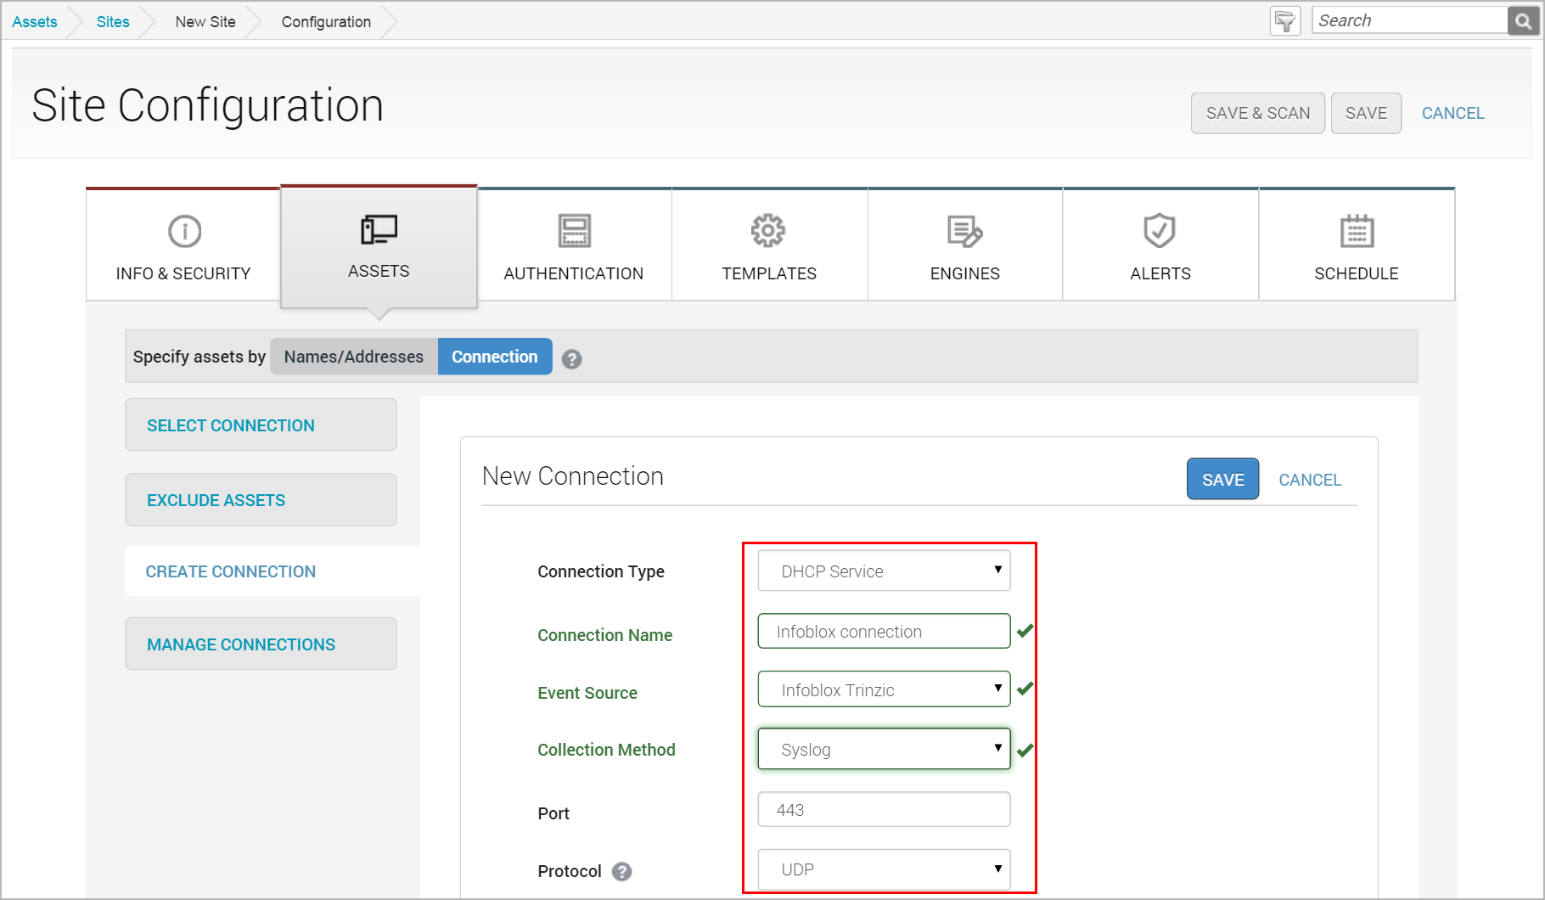 Discover Assets Dynamically with Infoblox DHCP